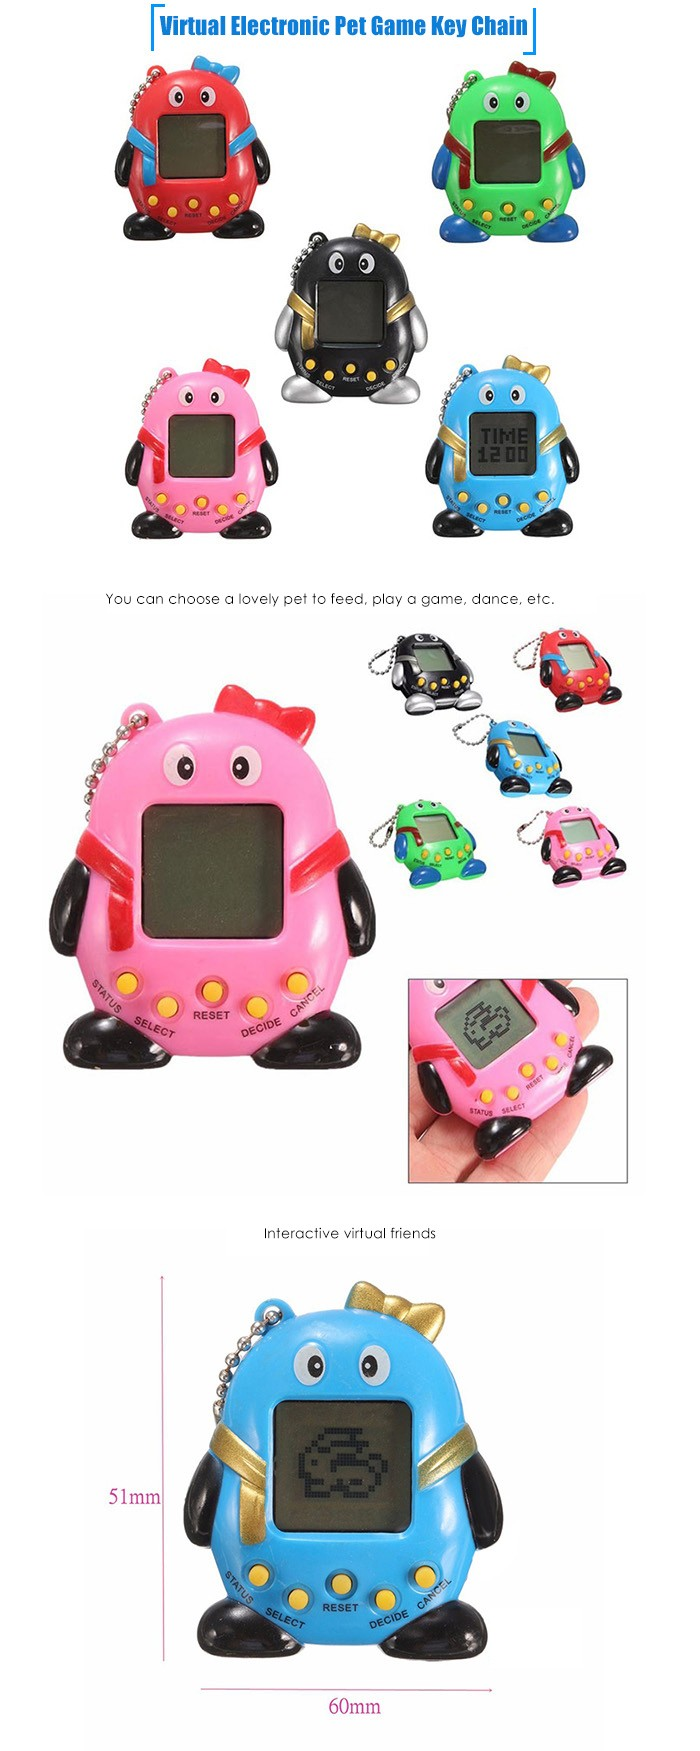 Key Chain with Nostalgic 49 Pets in 1 Electronic Pet Game Toy - 1pc